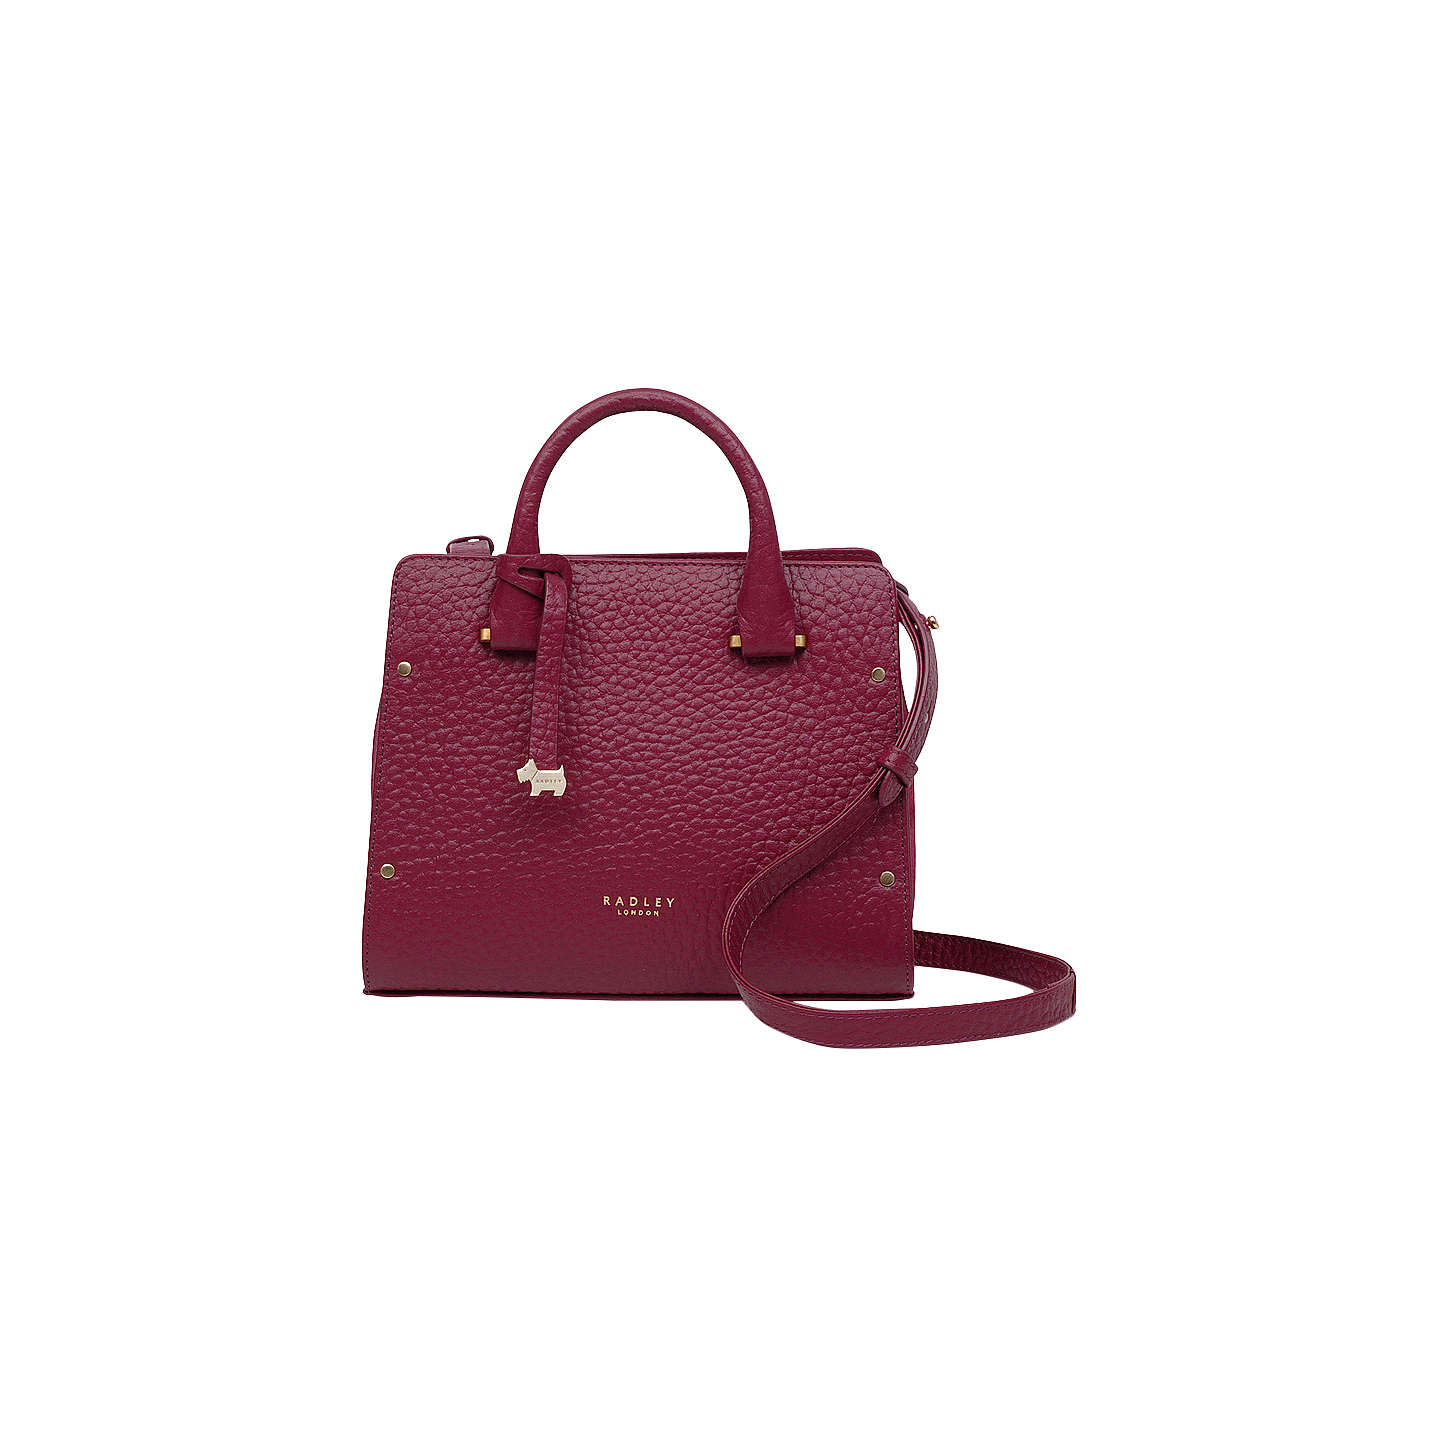 Radley Bag buyradley bow lane leather grab bag, berry online at johnlewis.com ... BFGPDJW